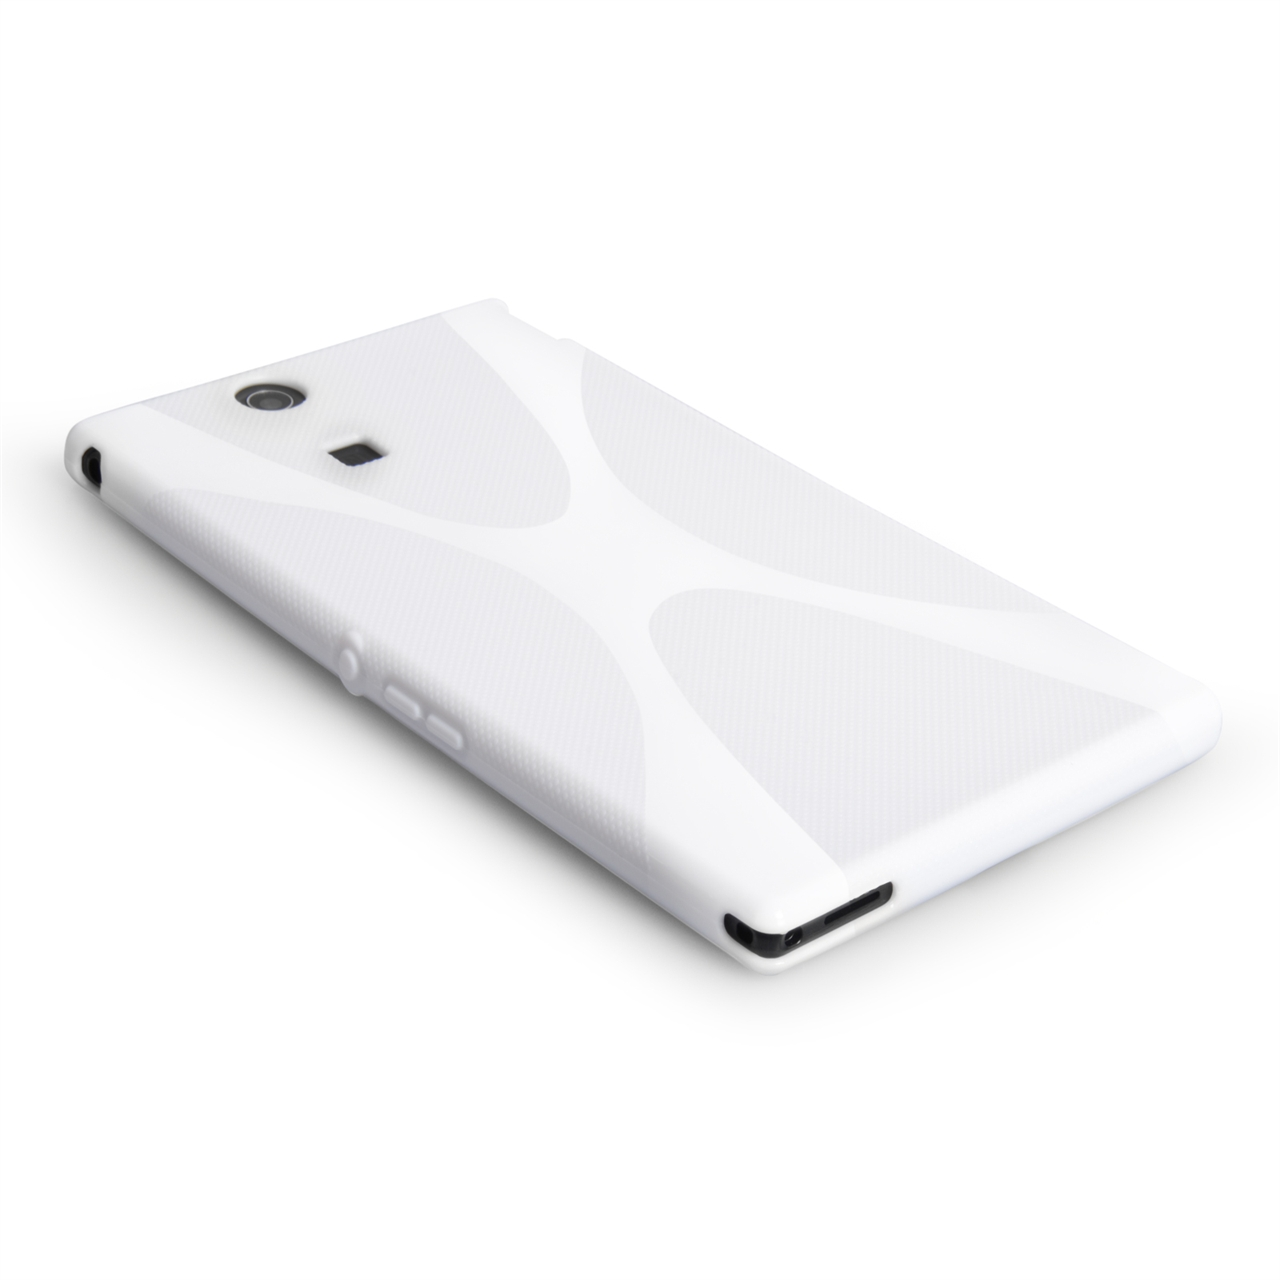 YouSave Accessories Sony Xperia Z Ultra X-line Gel Case - White